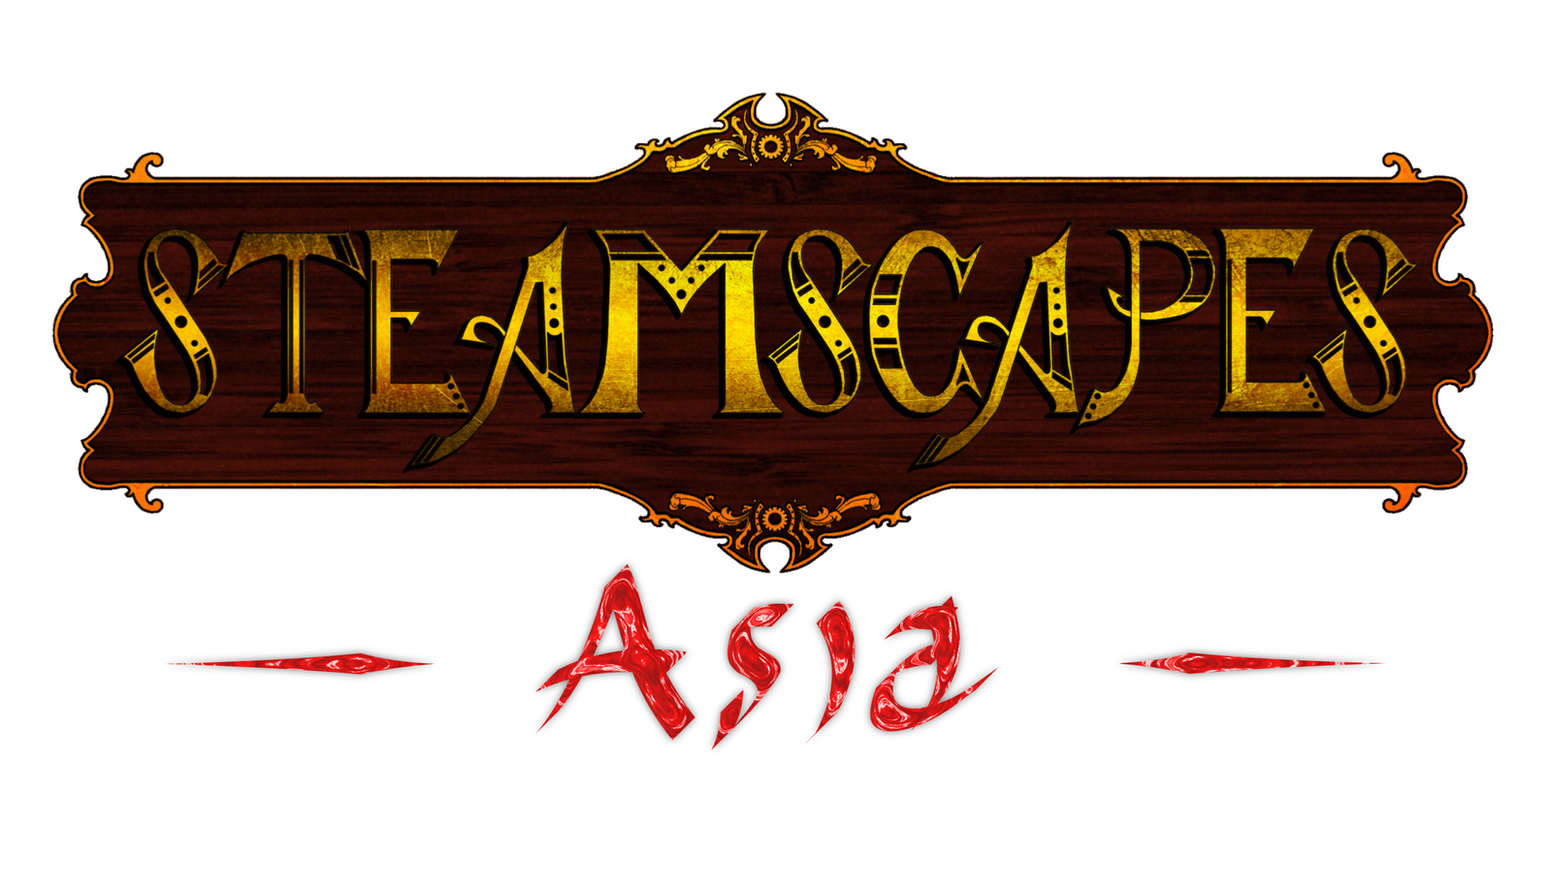 Historical Asian Steampunk! The second of the major setting books for the Steamscapes RPG setting.